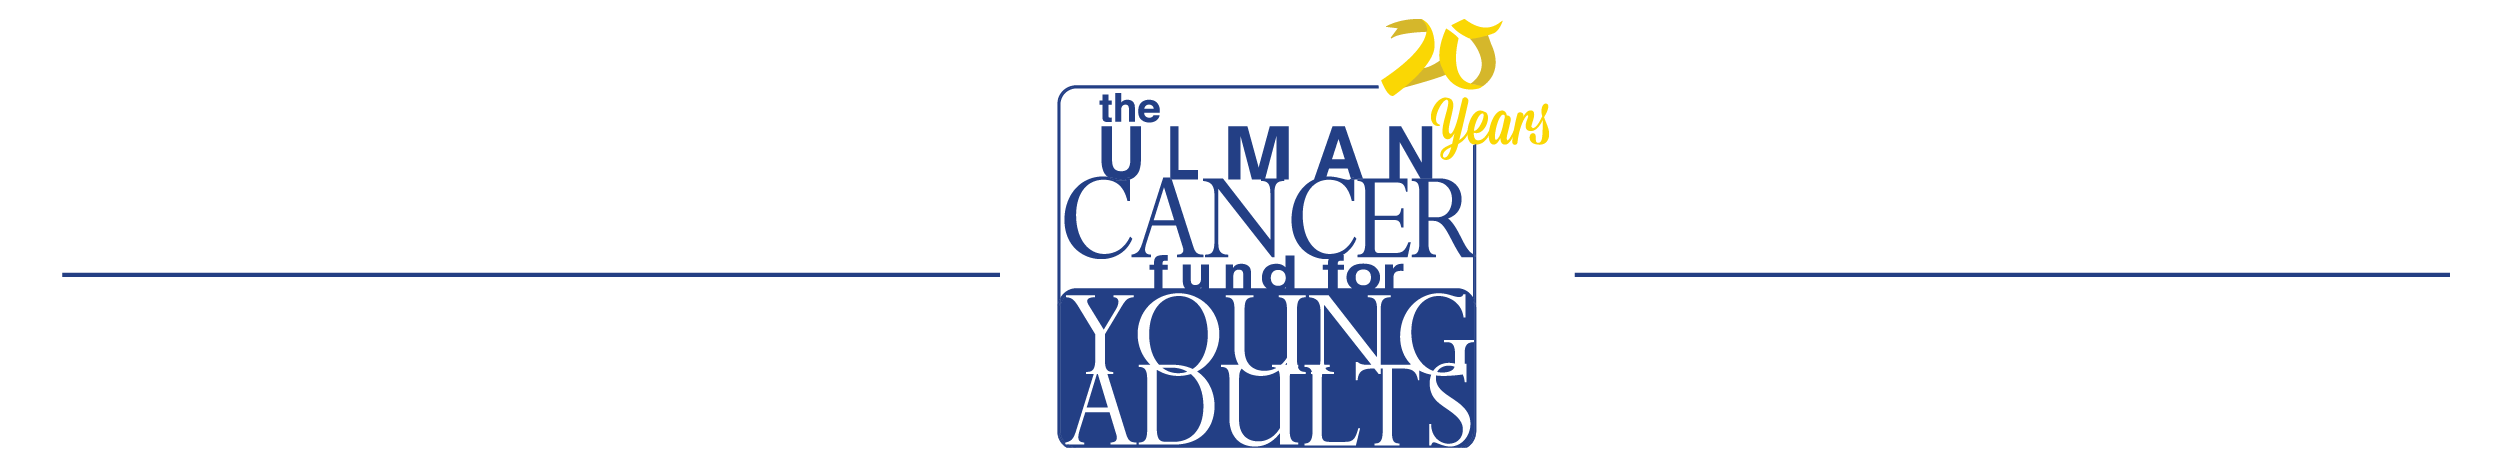 The Ulman Cancer Fund For Young Adults Newsroom